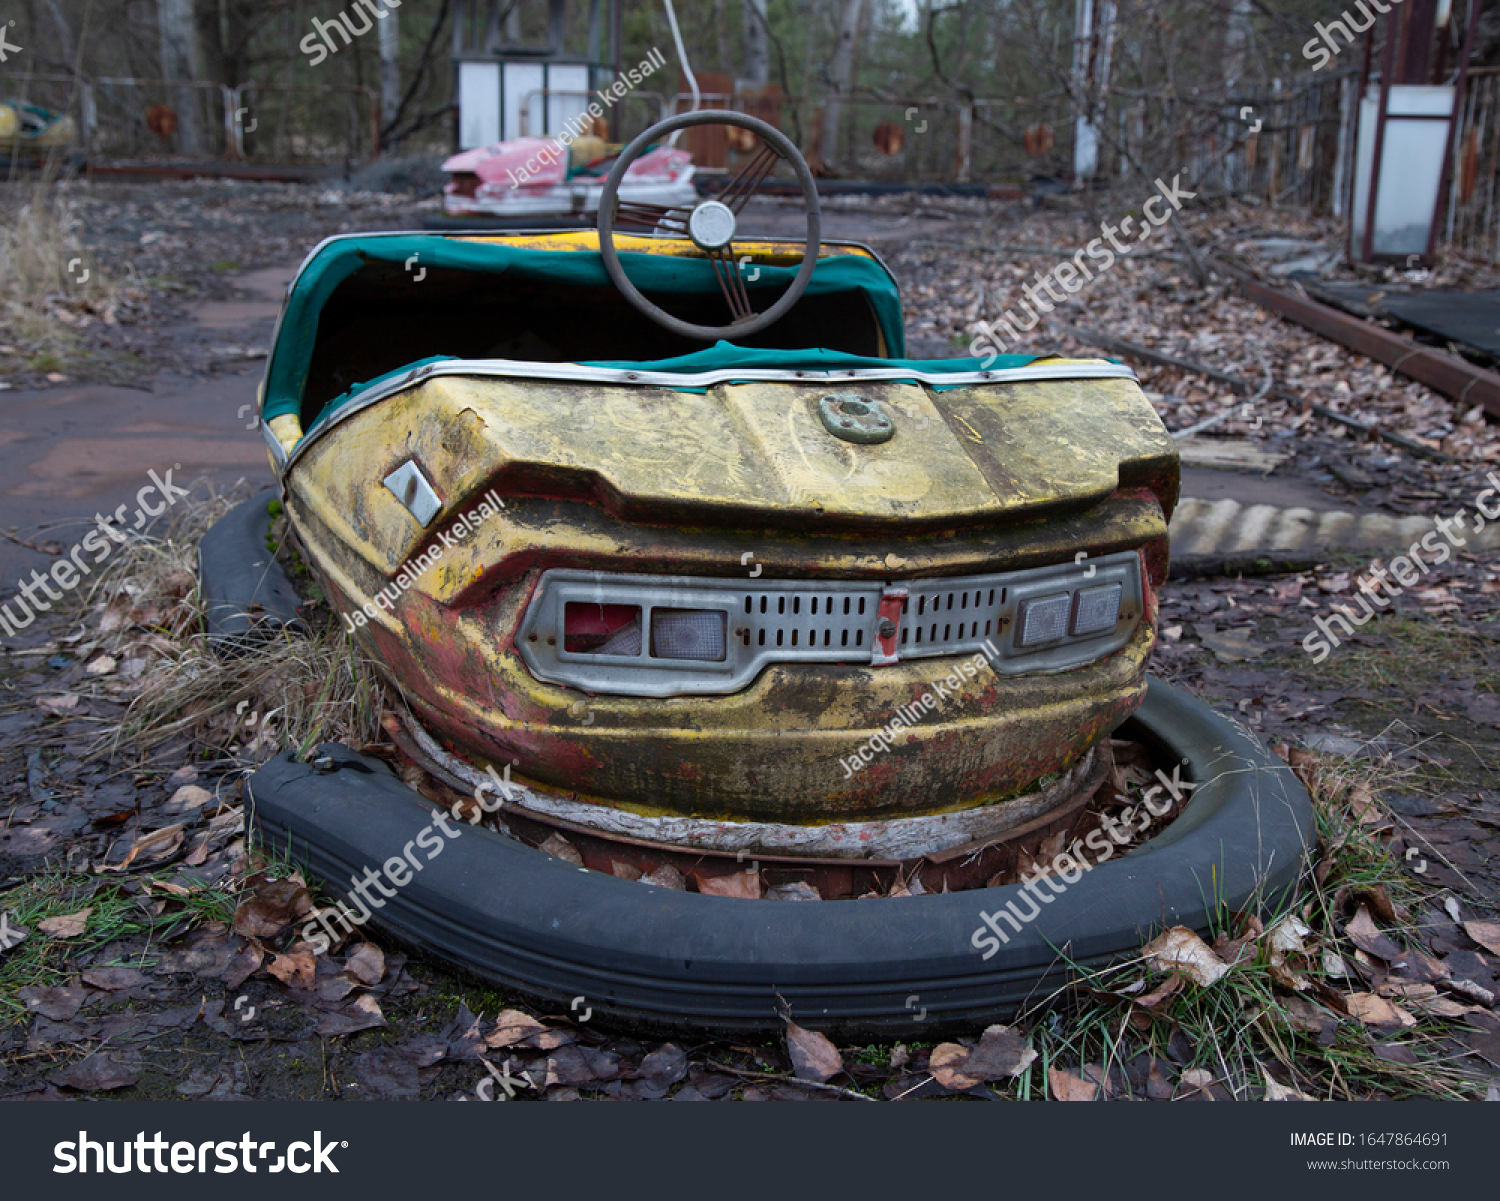 A vintage bumper car at the funfair at the abandoned Chernobyl nuclear reactor power plant in Ukraine